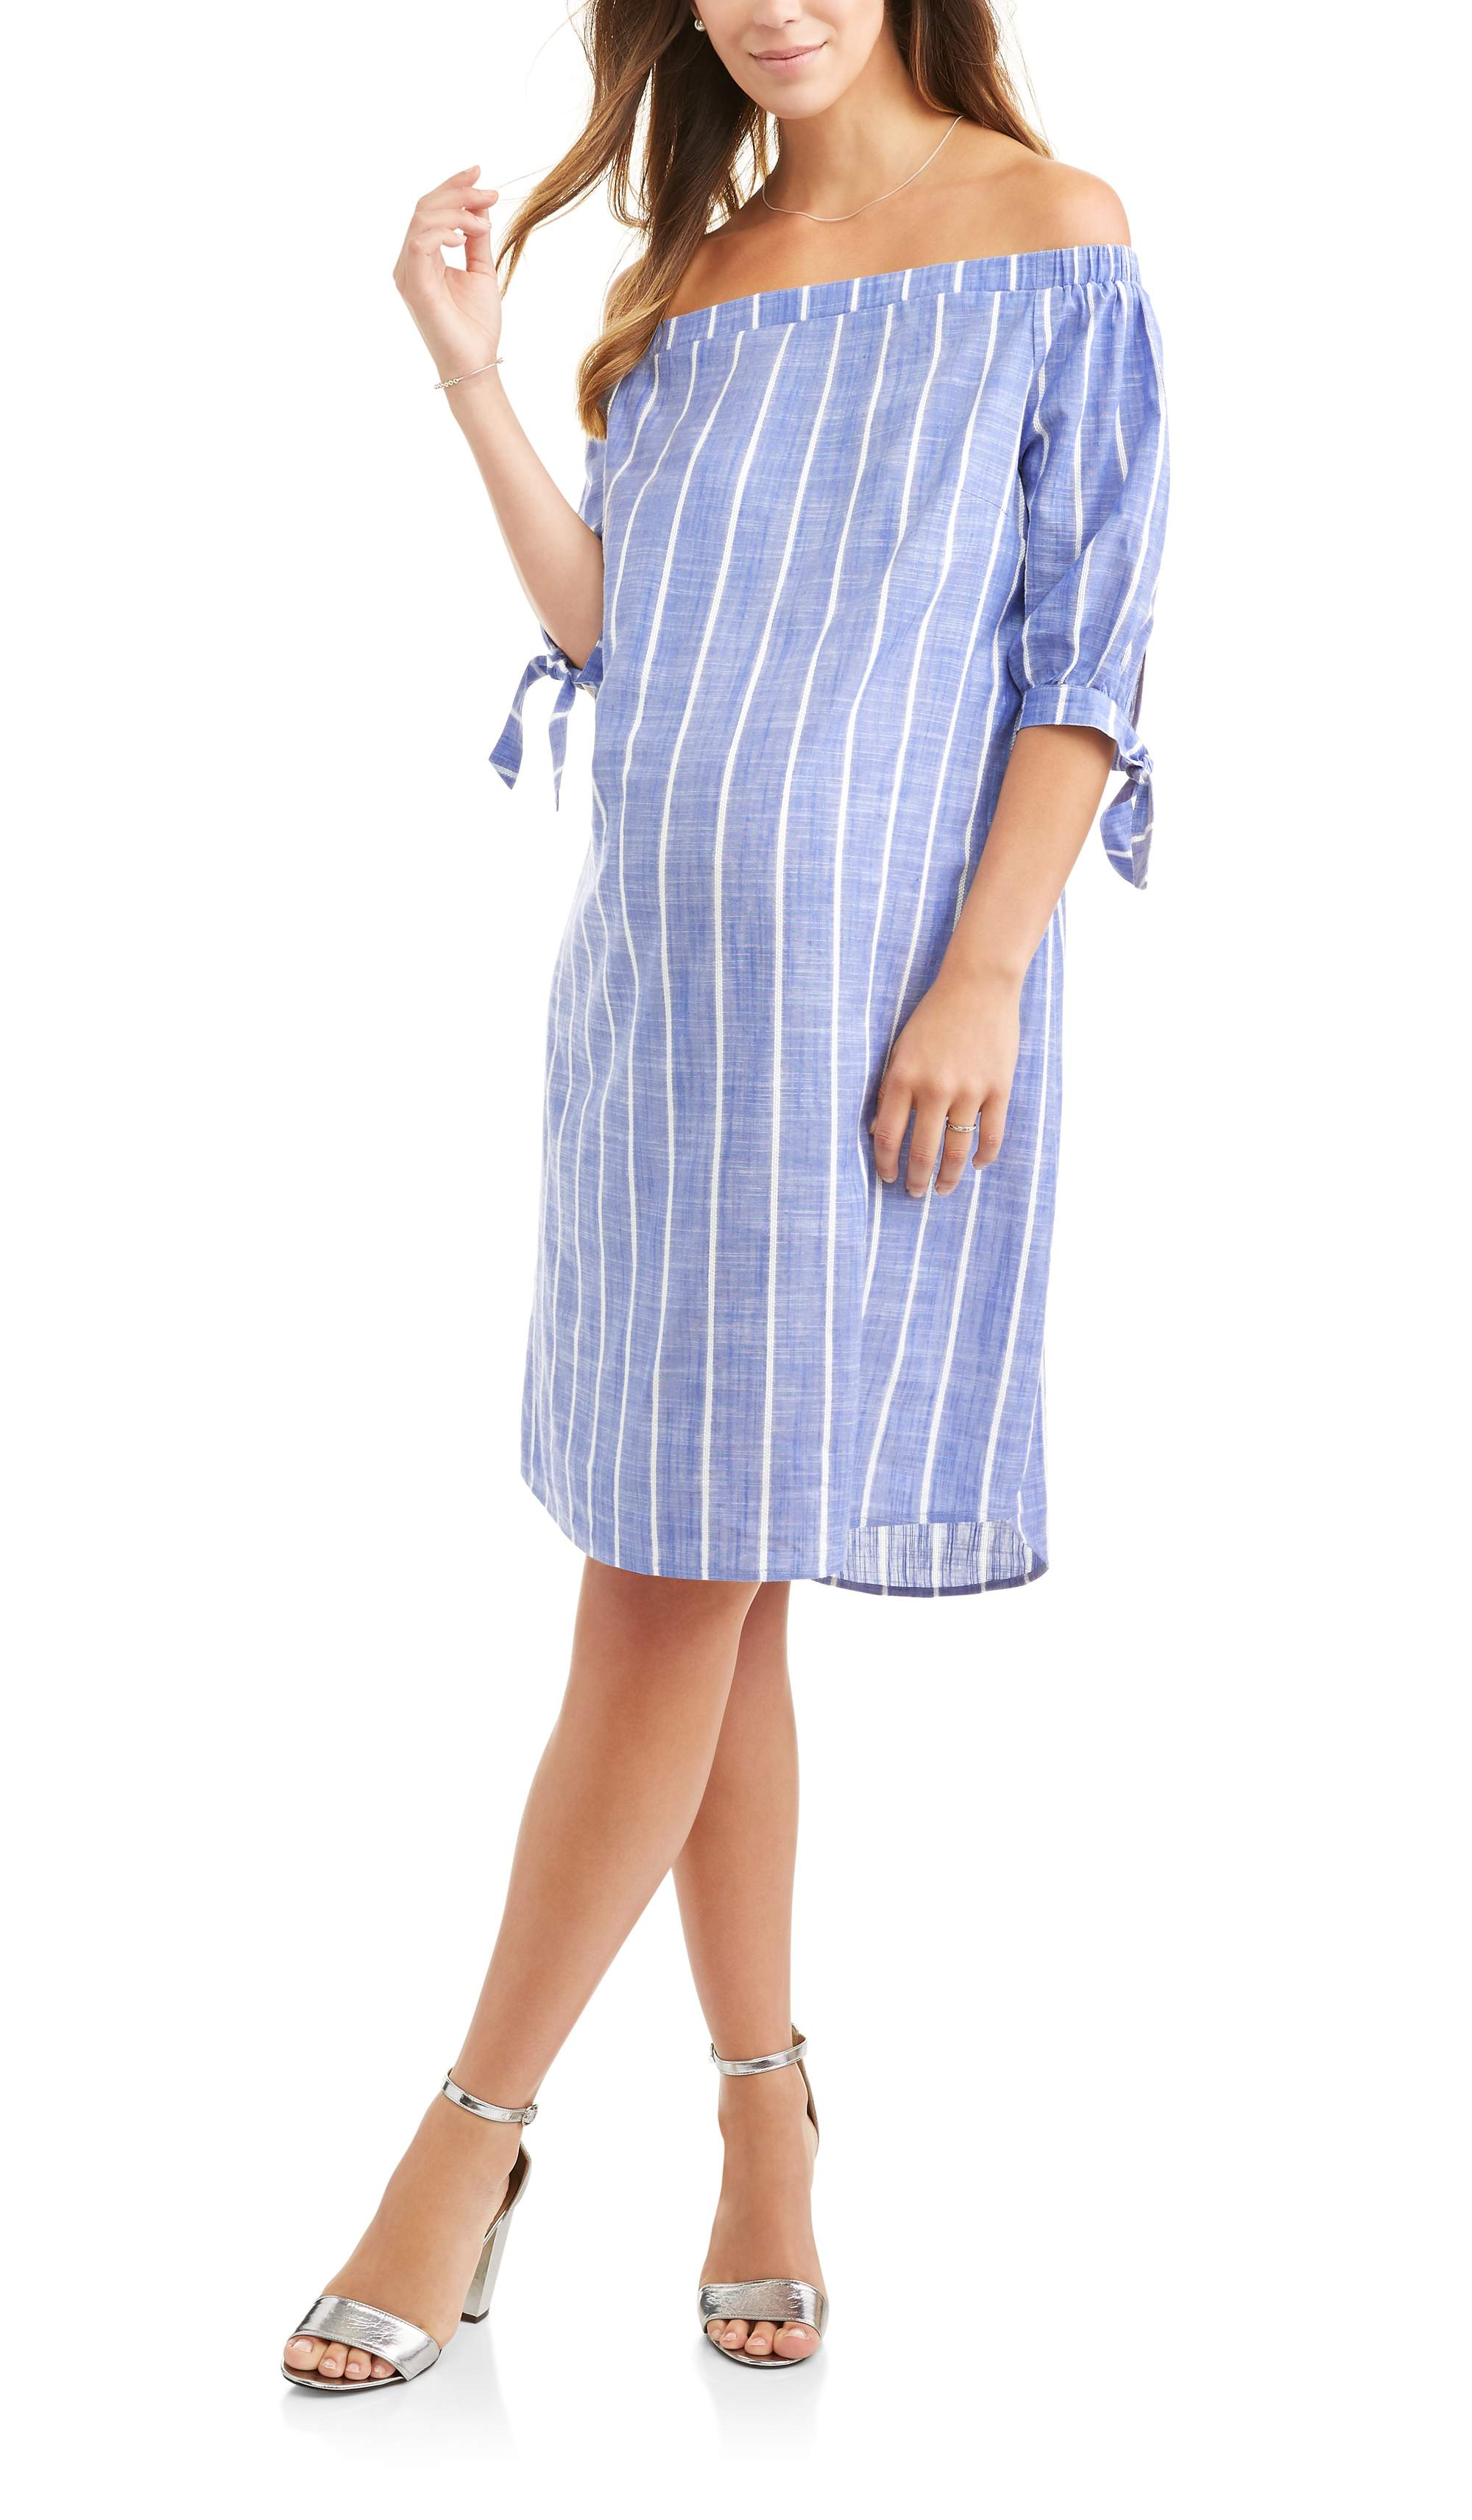 Whoa, Wait Maternity Off The Shoulder Dress with Tie Sleeves